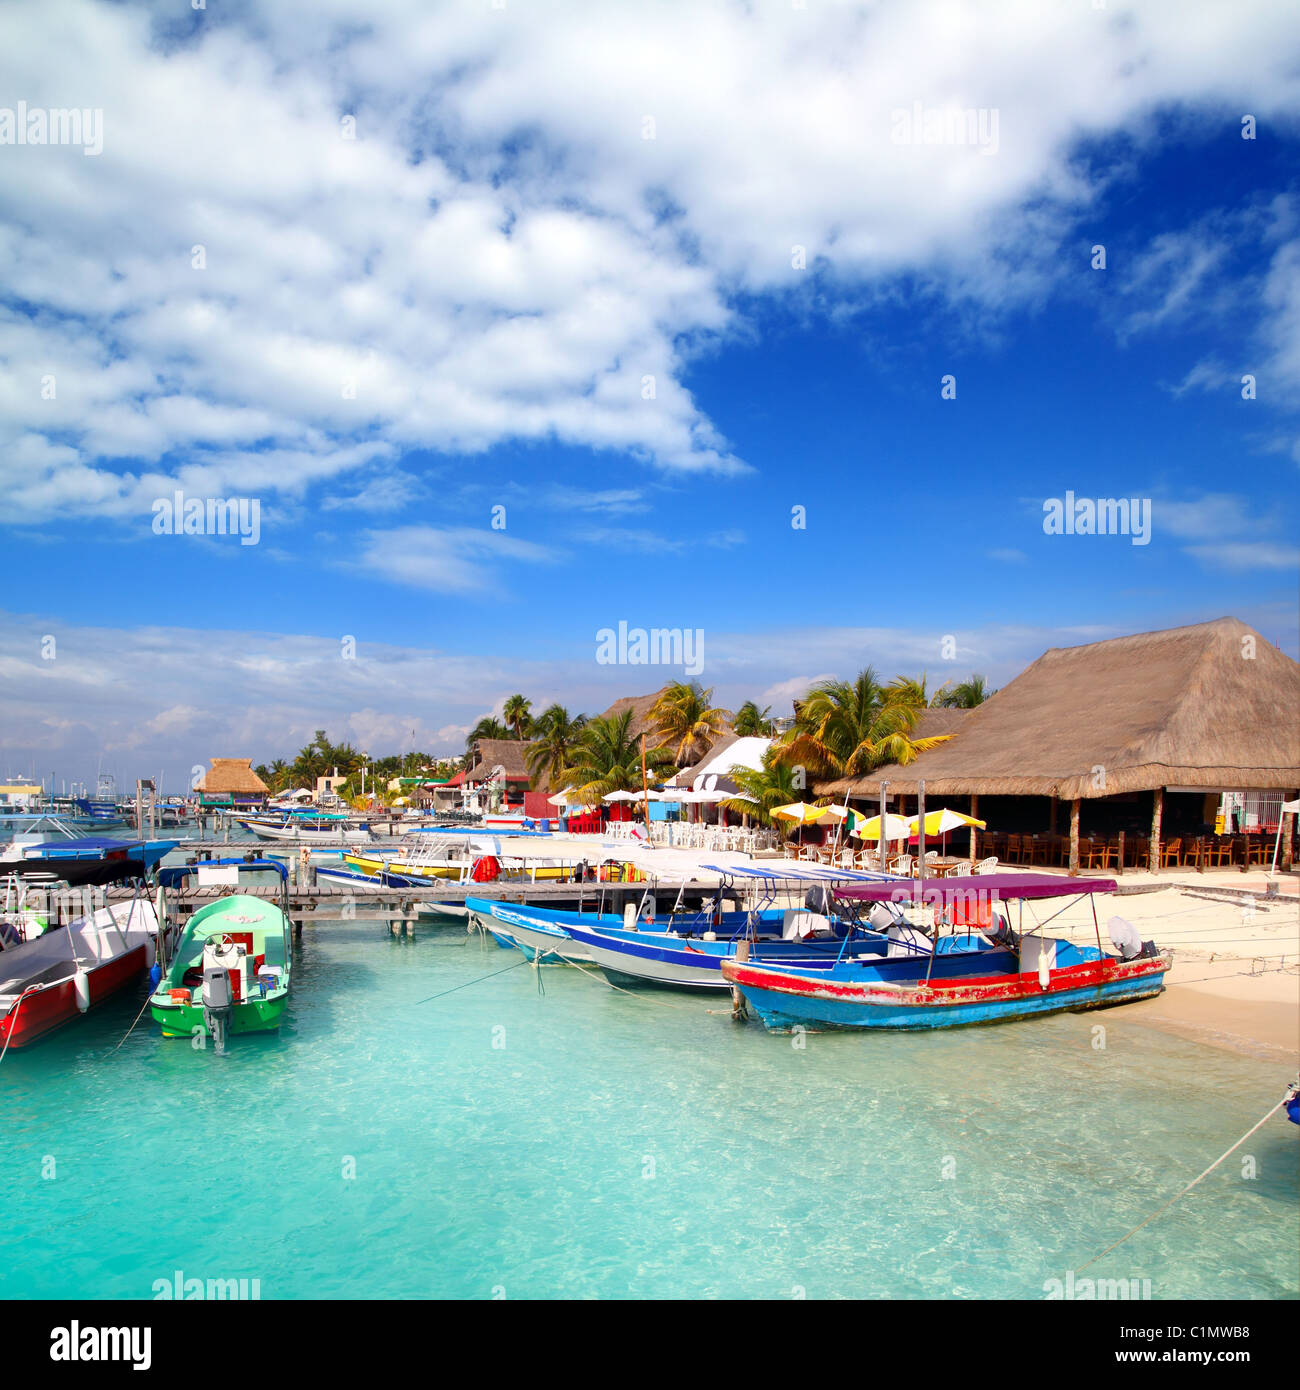 Isla Mujeres island dock port pier colorful Mexico Cancun - Stock Image